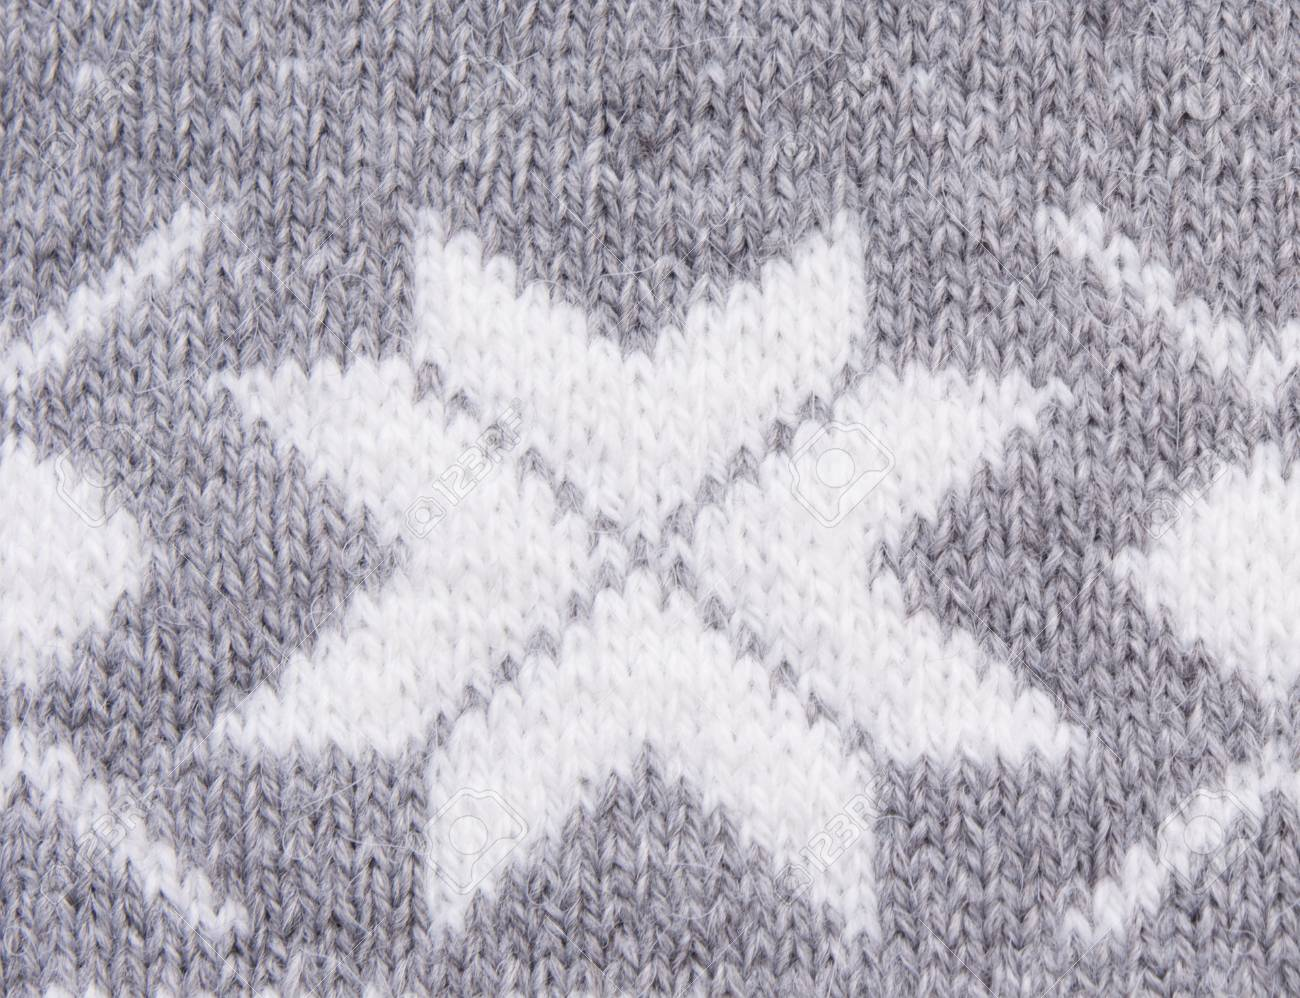 Knitted Pattern With White Snowflakes Stock Photo, Picture And ...